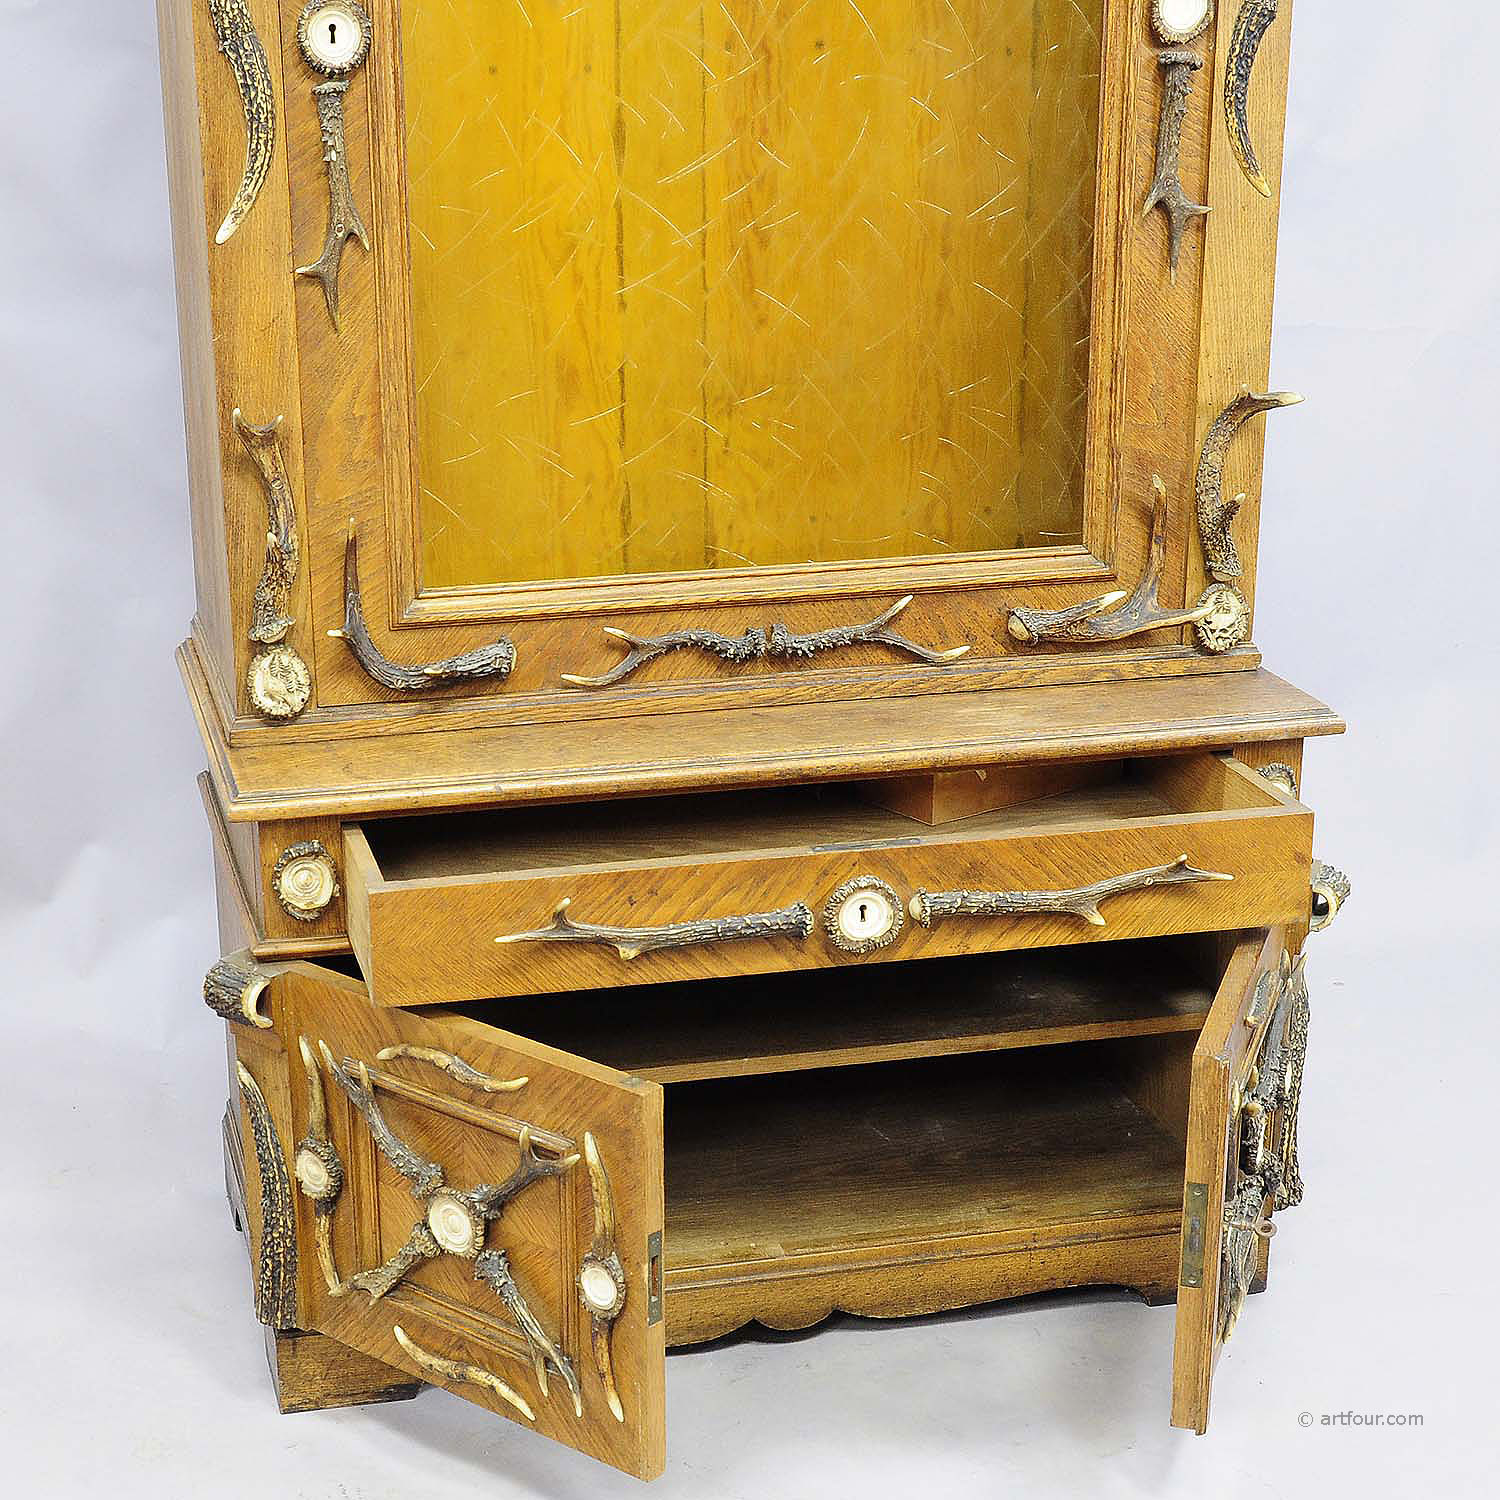 online for sale: an antique antler gun cabinet